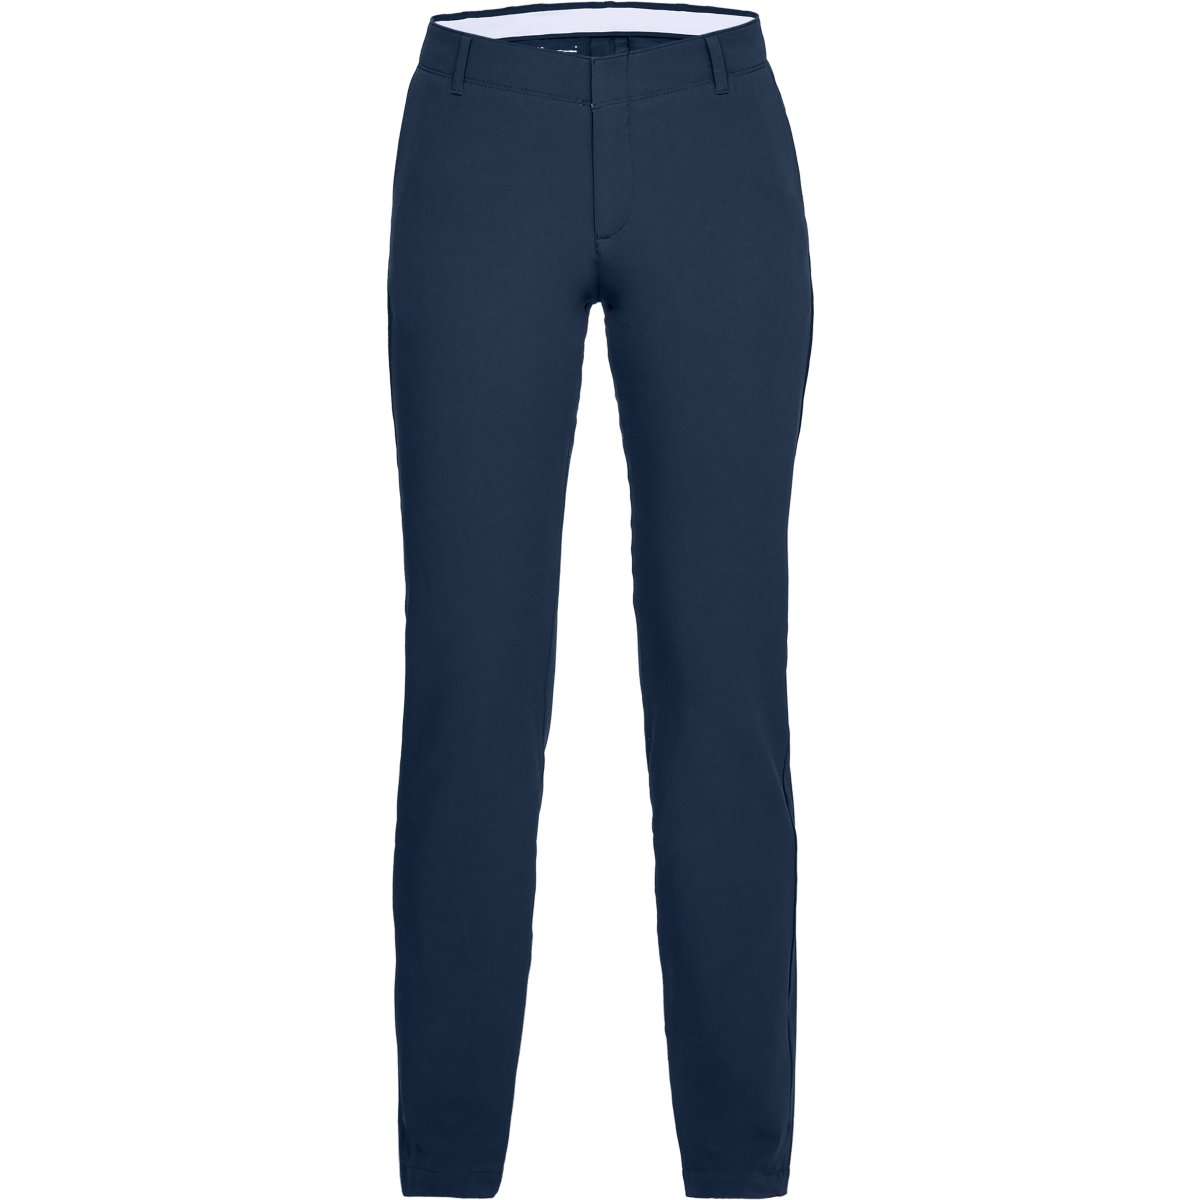 Under Armour Links Pant Academy - 8